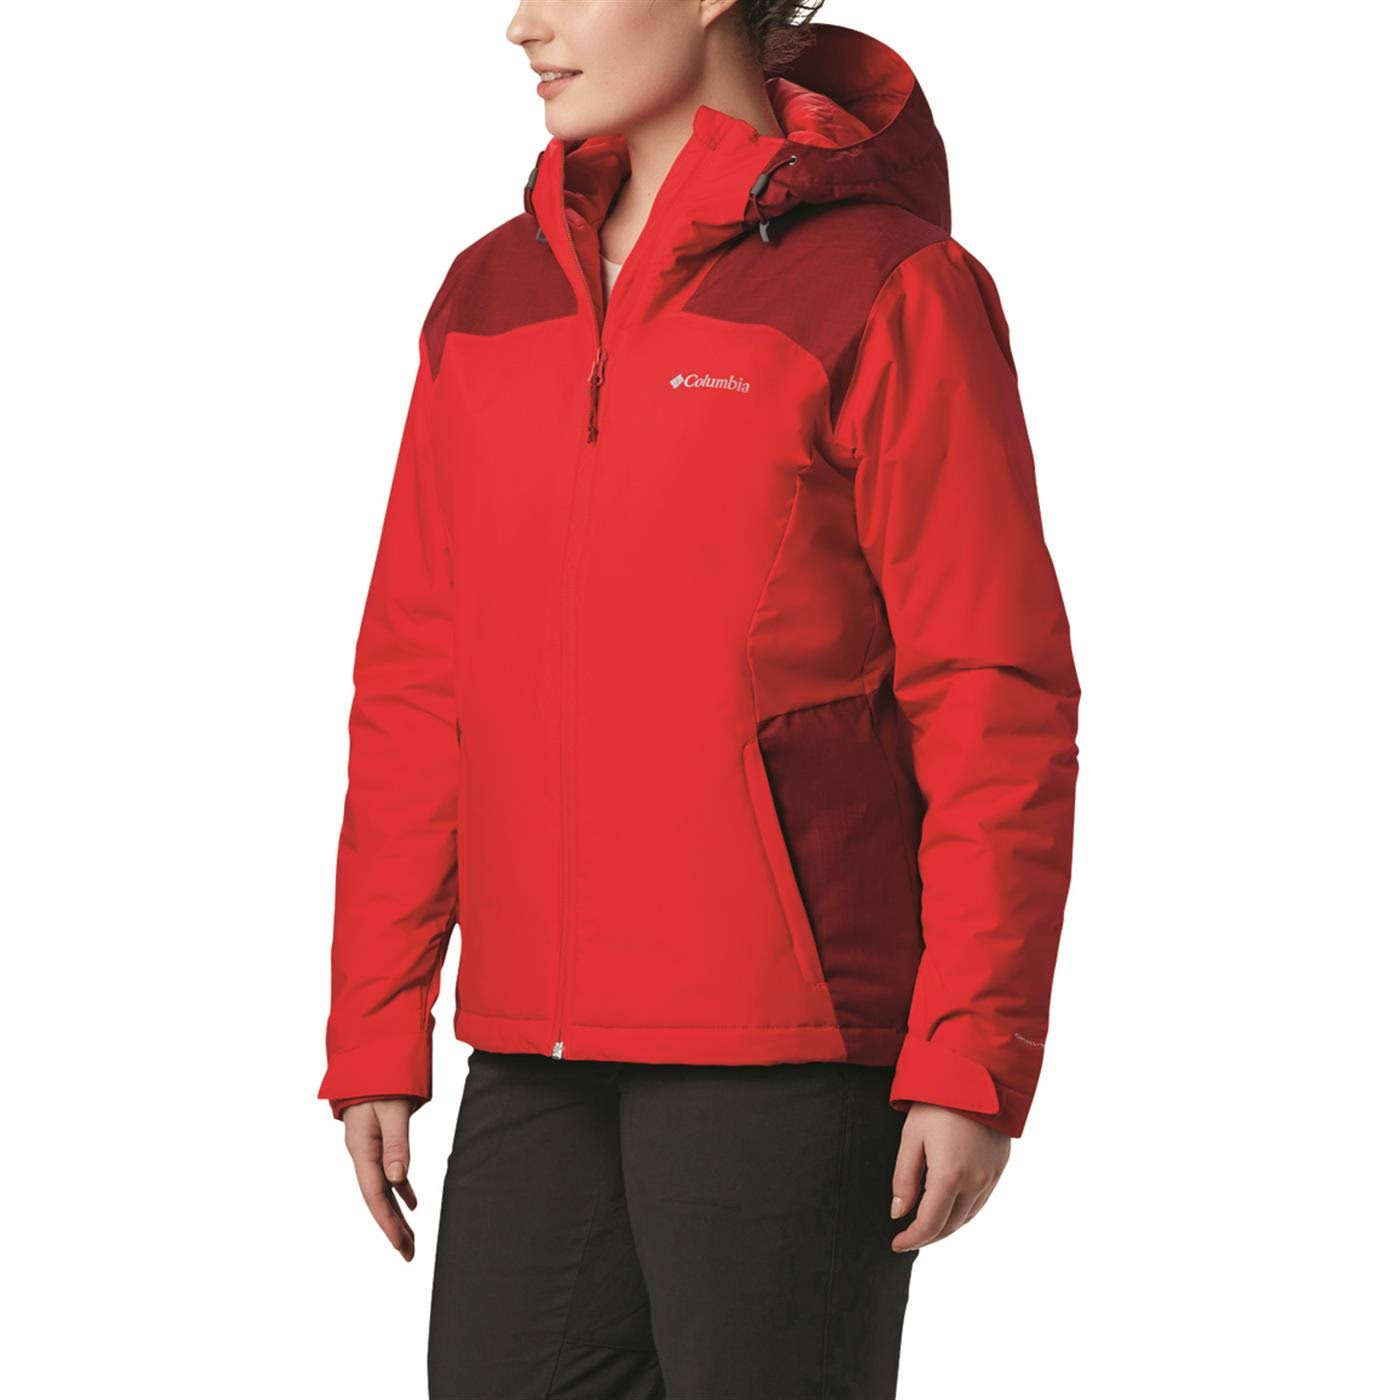 Columbia Women's Tipton Peak Insulated Jacket - Red Lily, Beet